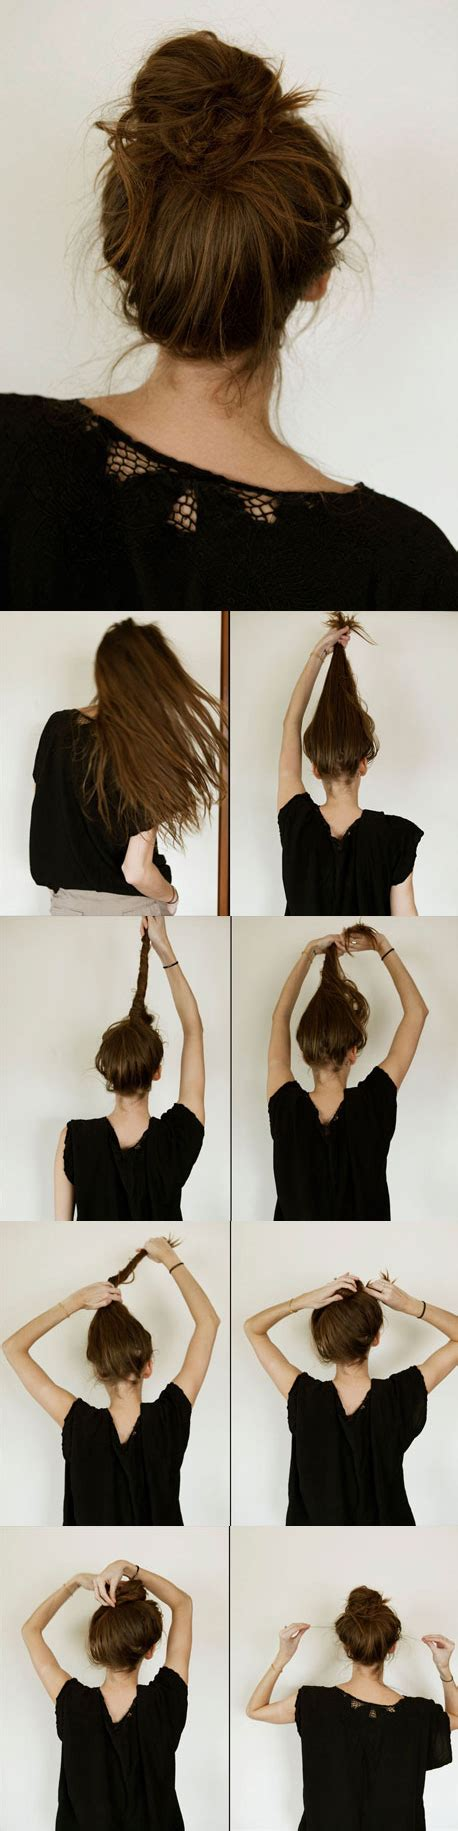 easy to make bun hairstyles 18 pretty simple bun hairstyles tutorials for 2018